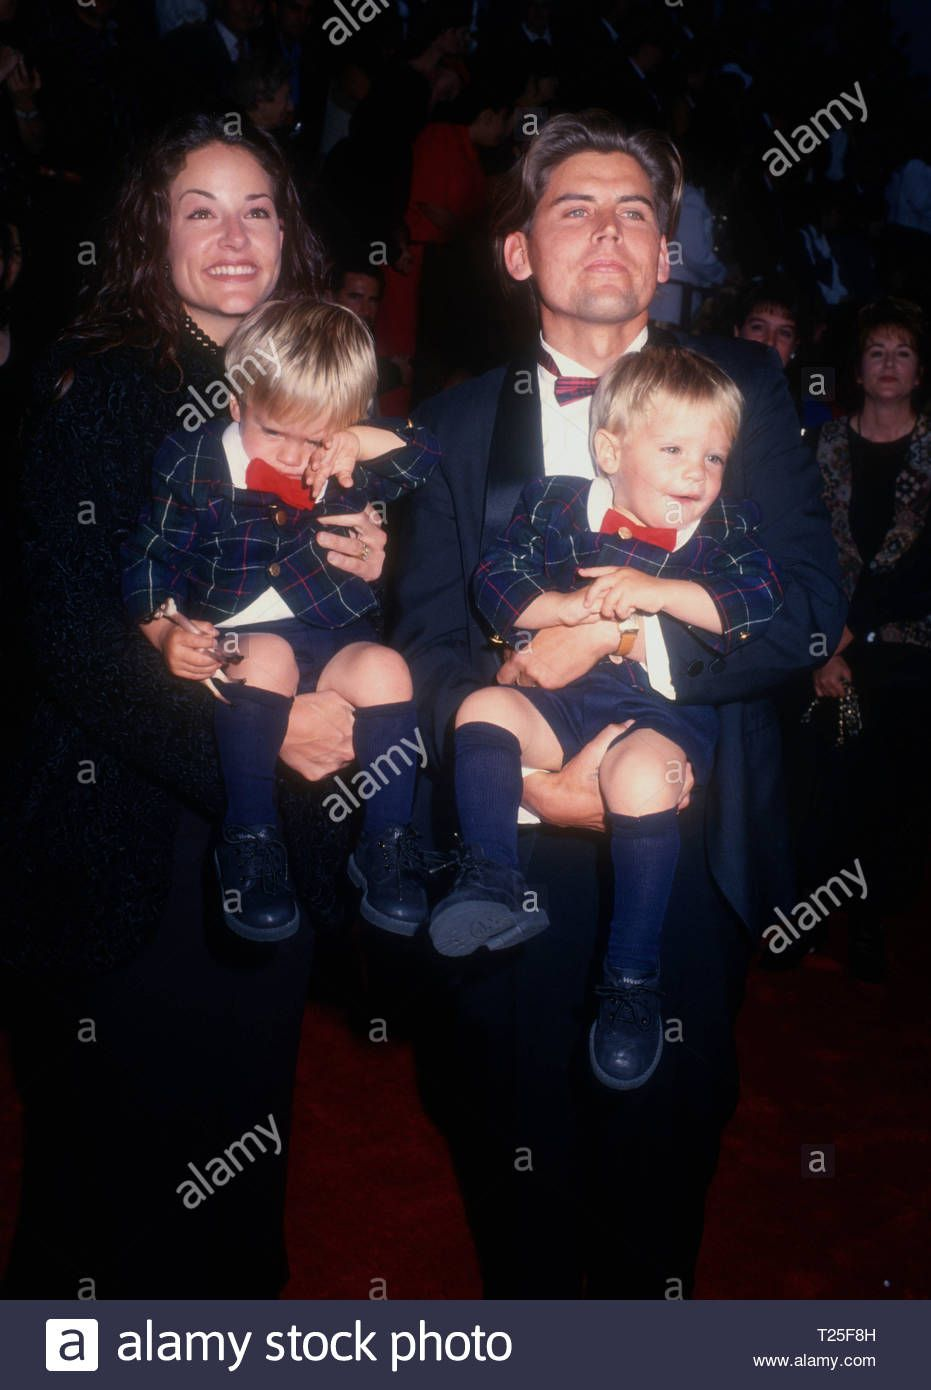 Stock Photo - CULVER CITY, CA - MARCH 8: Actors brothers Dylan Sprouse and Cole Sprouse and parents Melanie Wright and Matthew Sprouse attend the 20th Annual People's Choice Awards on March